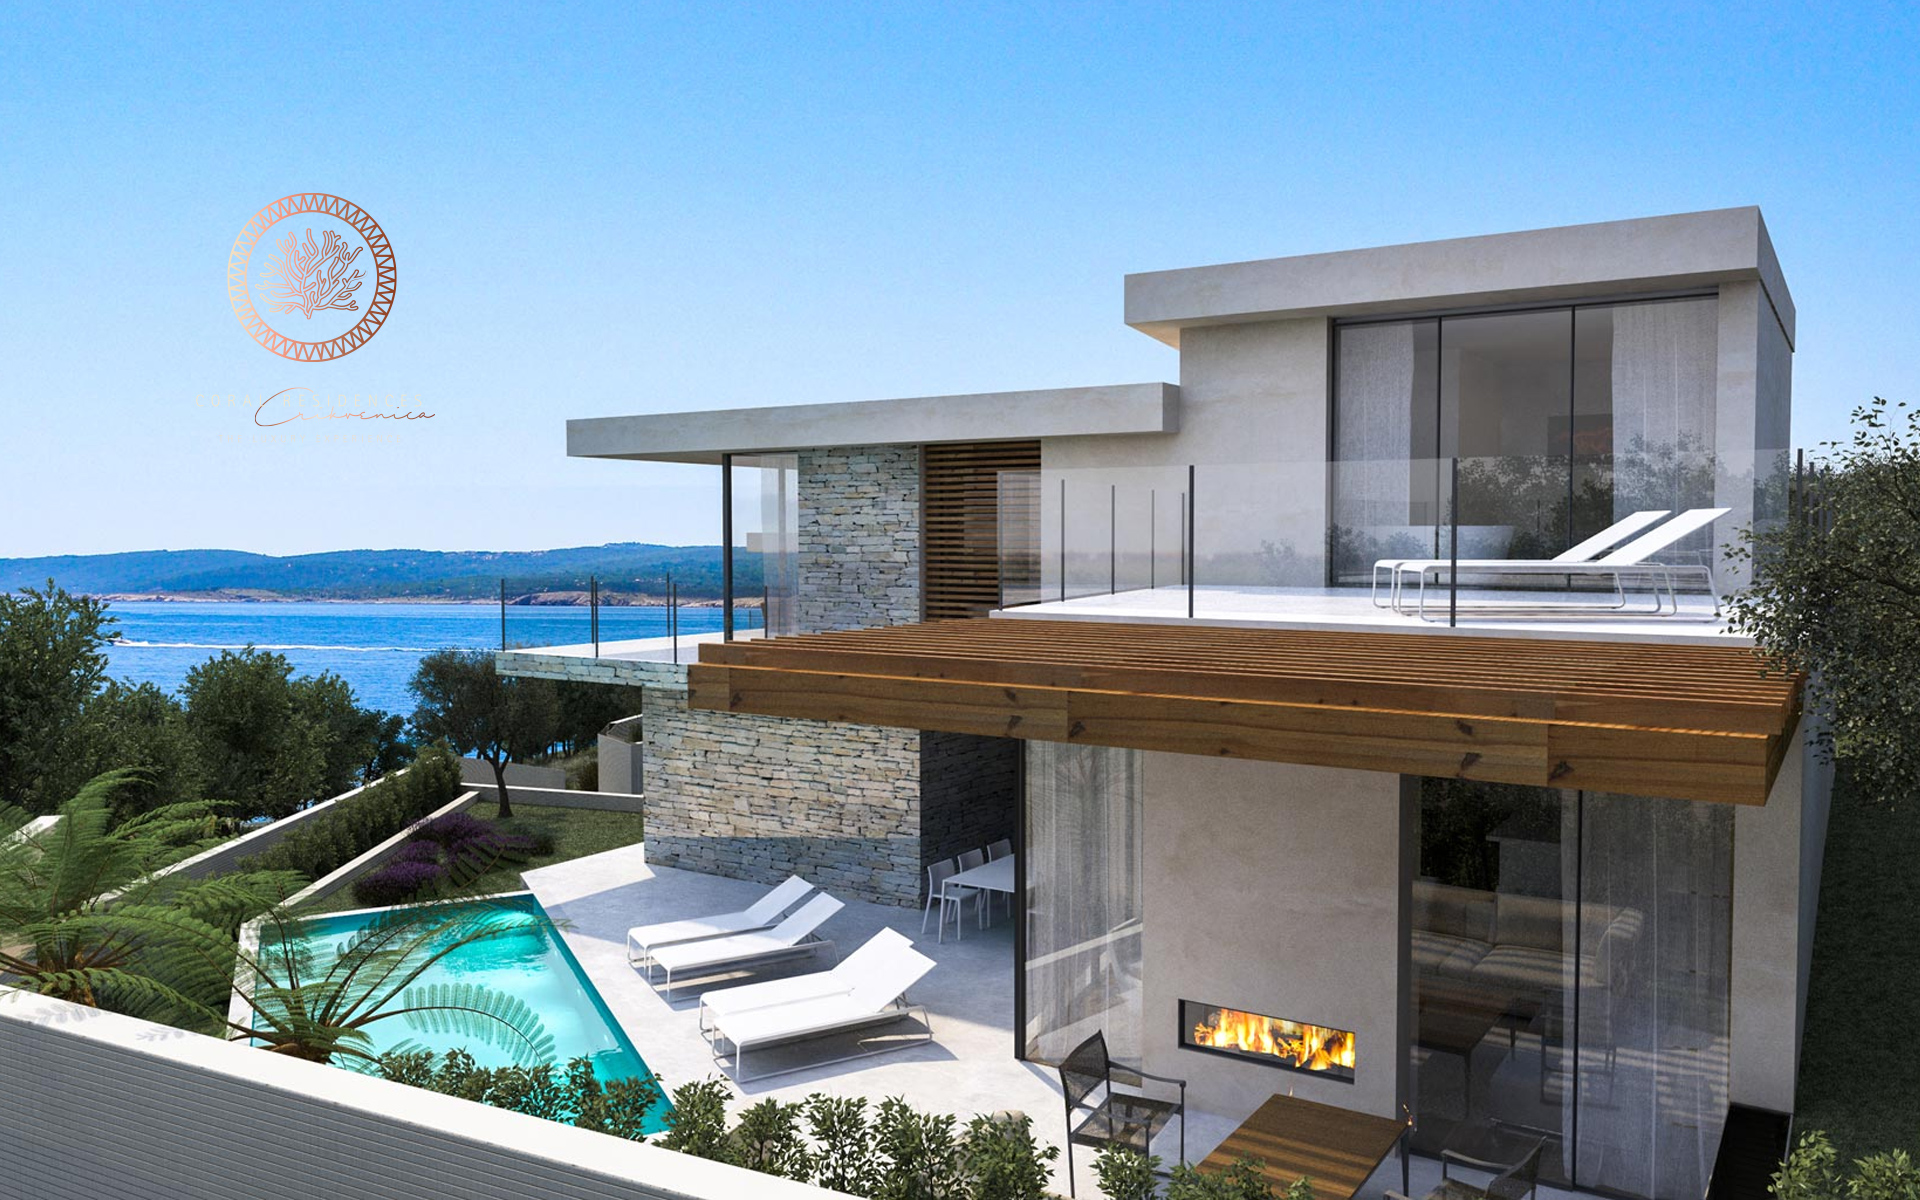 Coral residences Crikvenica project